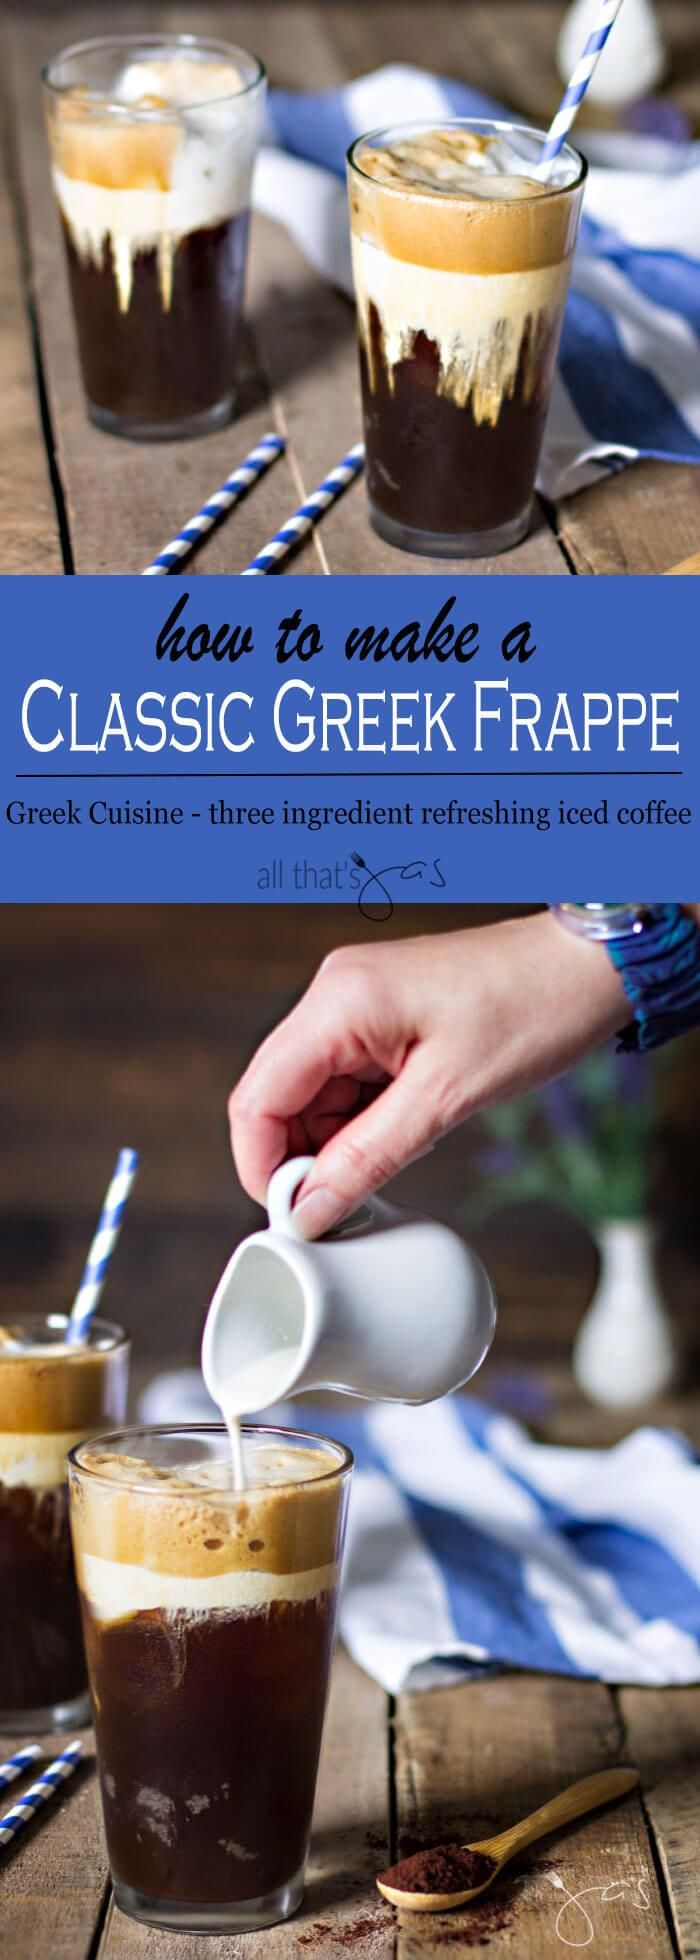 How To Make A Classic Greek Frappe | All that's Jas